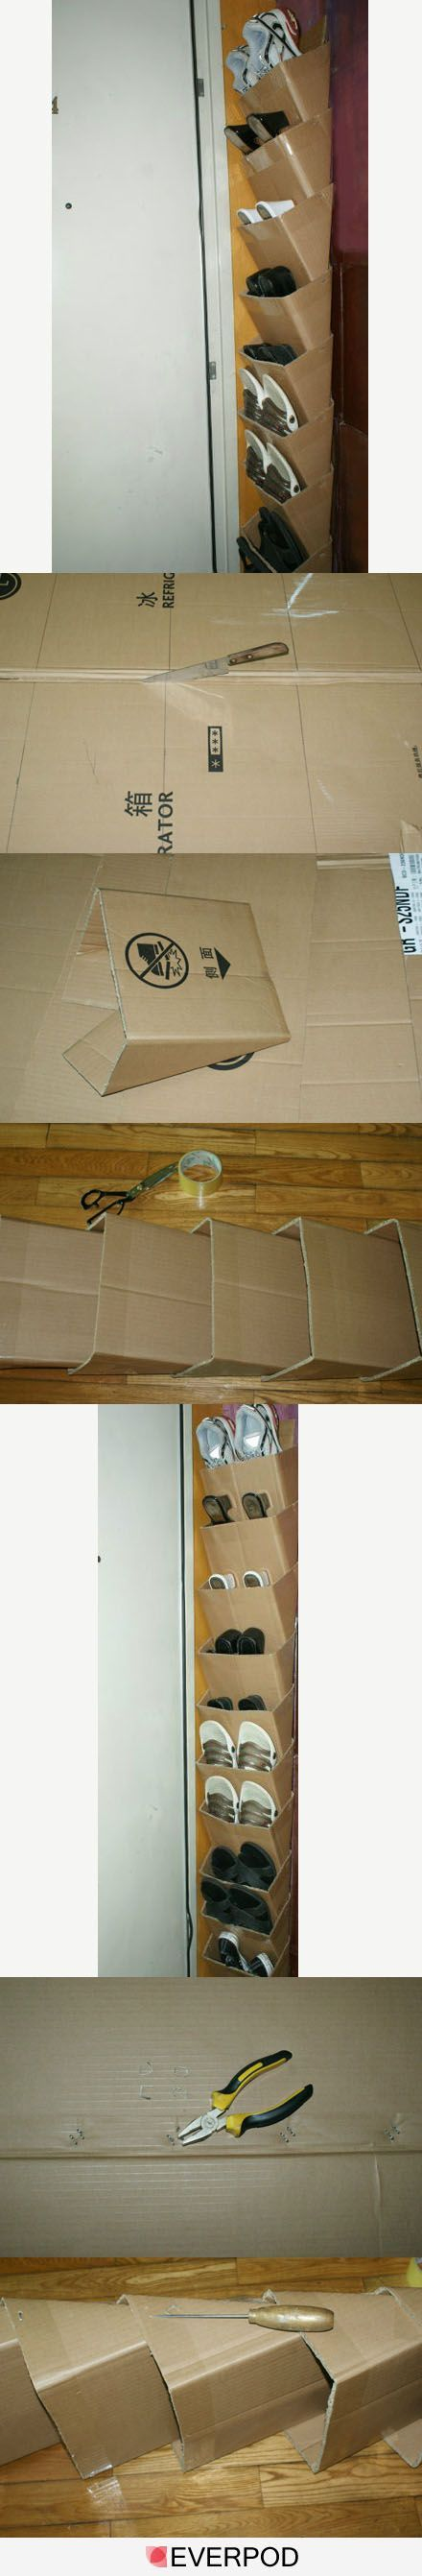 Genius idea #Cardboard vertical #shoe rack (can add fabric or decorative paper to make it look pretty) #DIY craft #Easy #cheap #Organizing #storage #unclutter #Decoration  #Recycled #Eco #Hippy #Natural #Space saver for small rooms+++ Con carton reciclado hacer zapatero vertical facil barato orden y organizacion  en casa Manuaiidad Ahorra espacio